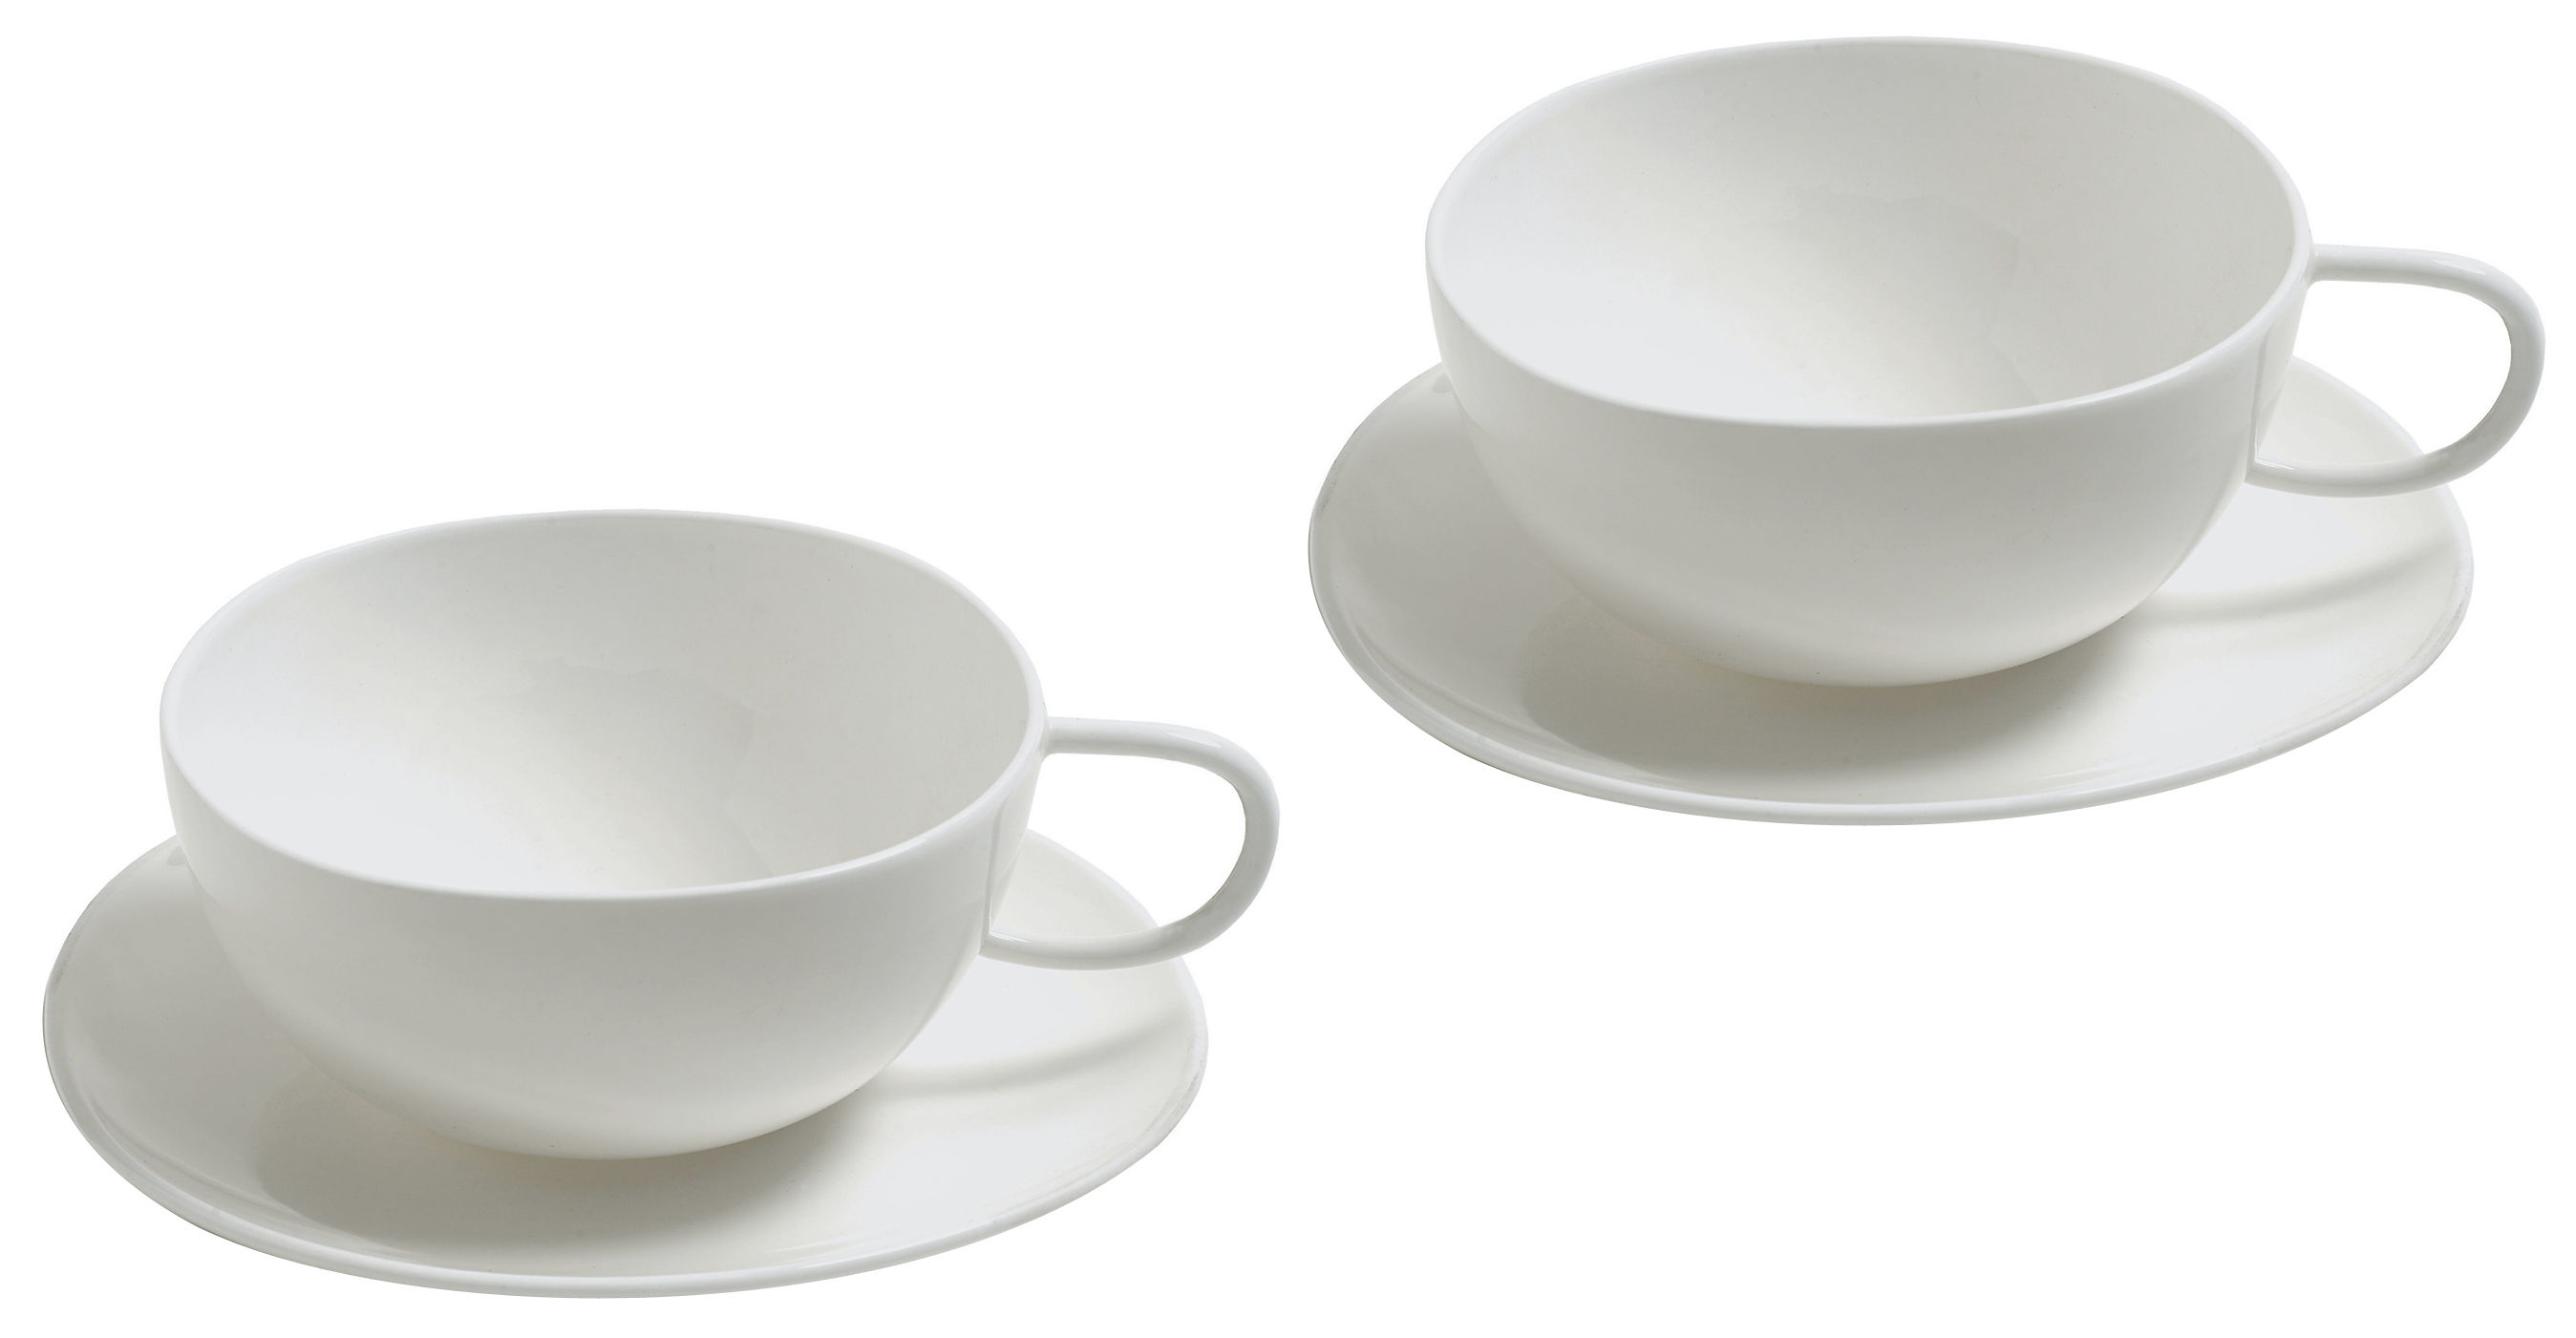 Fruit Basket Teacup Set Of 2 Cups 2 Saucers White By